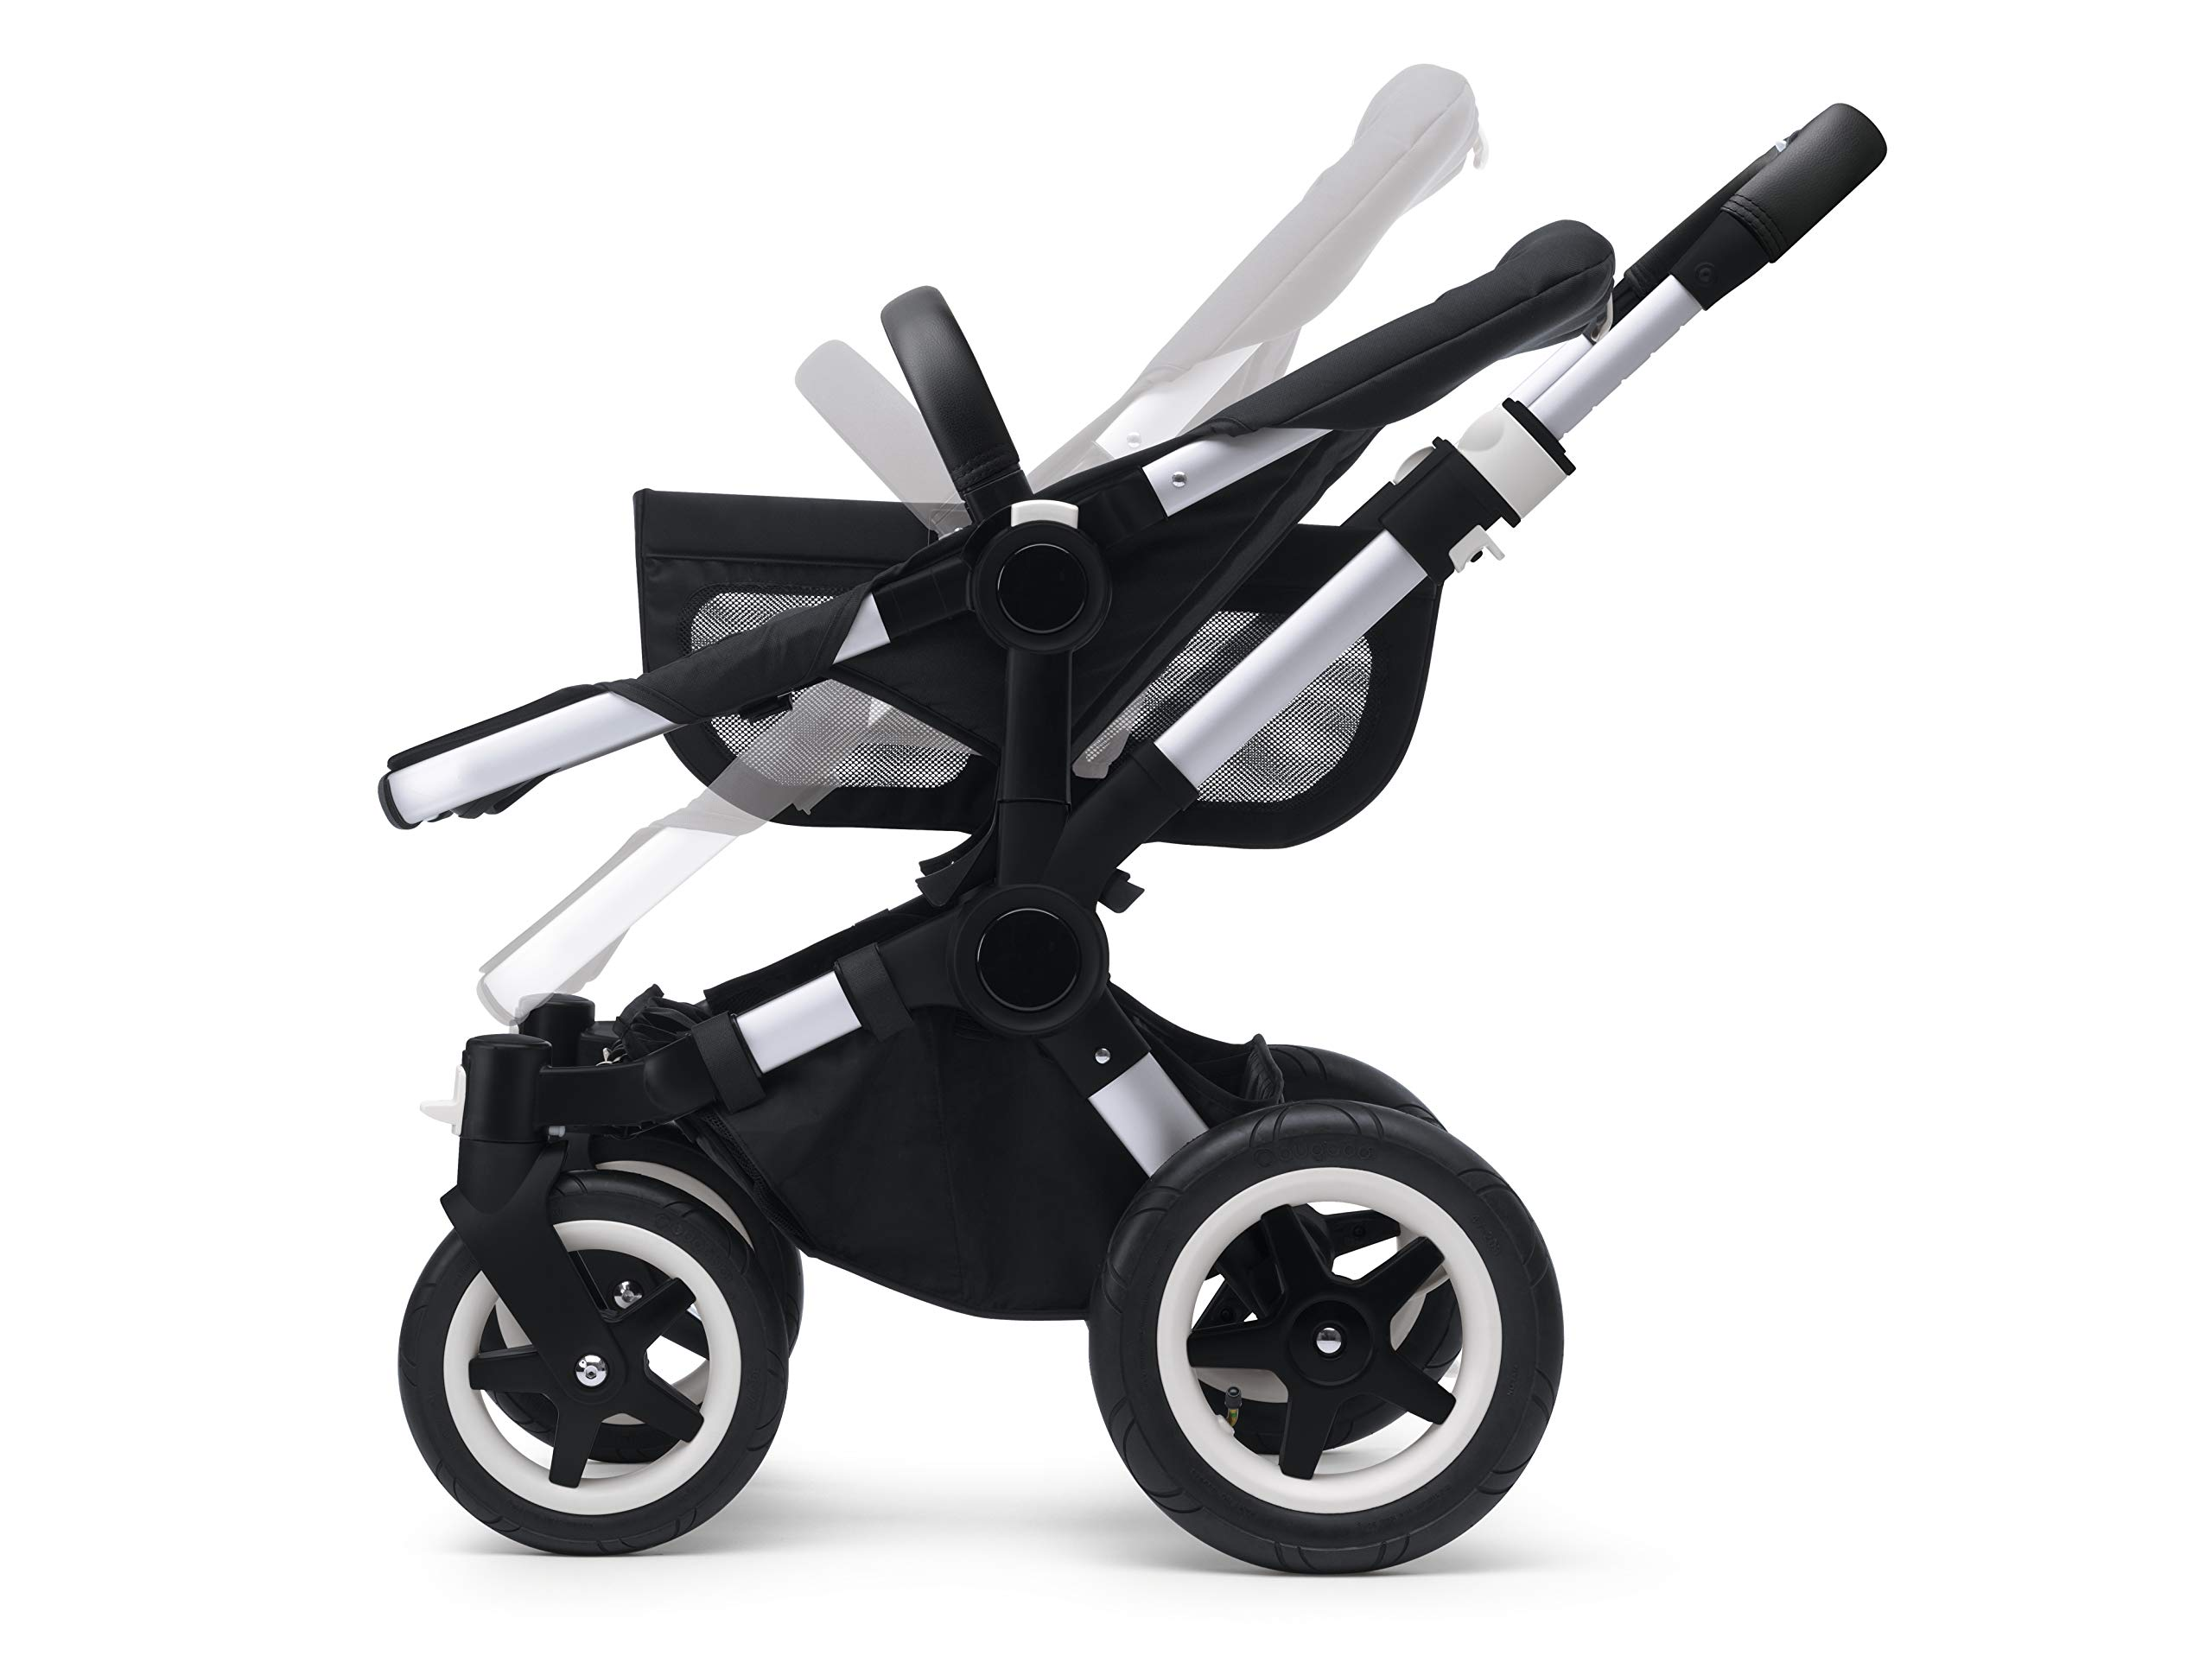 Bugaboo Donkey 2 Duo, 2 in 1 Pram and Double Pushchair for Baby and Toddler, Black Bugaboo Perfect for two children of different ages Use as a double pushchair or convert it back into a single (mono) in a few simple clicks You only need one hand to push, steer and turn 6